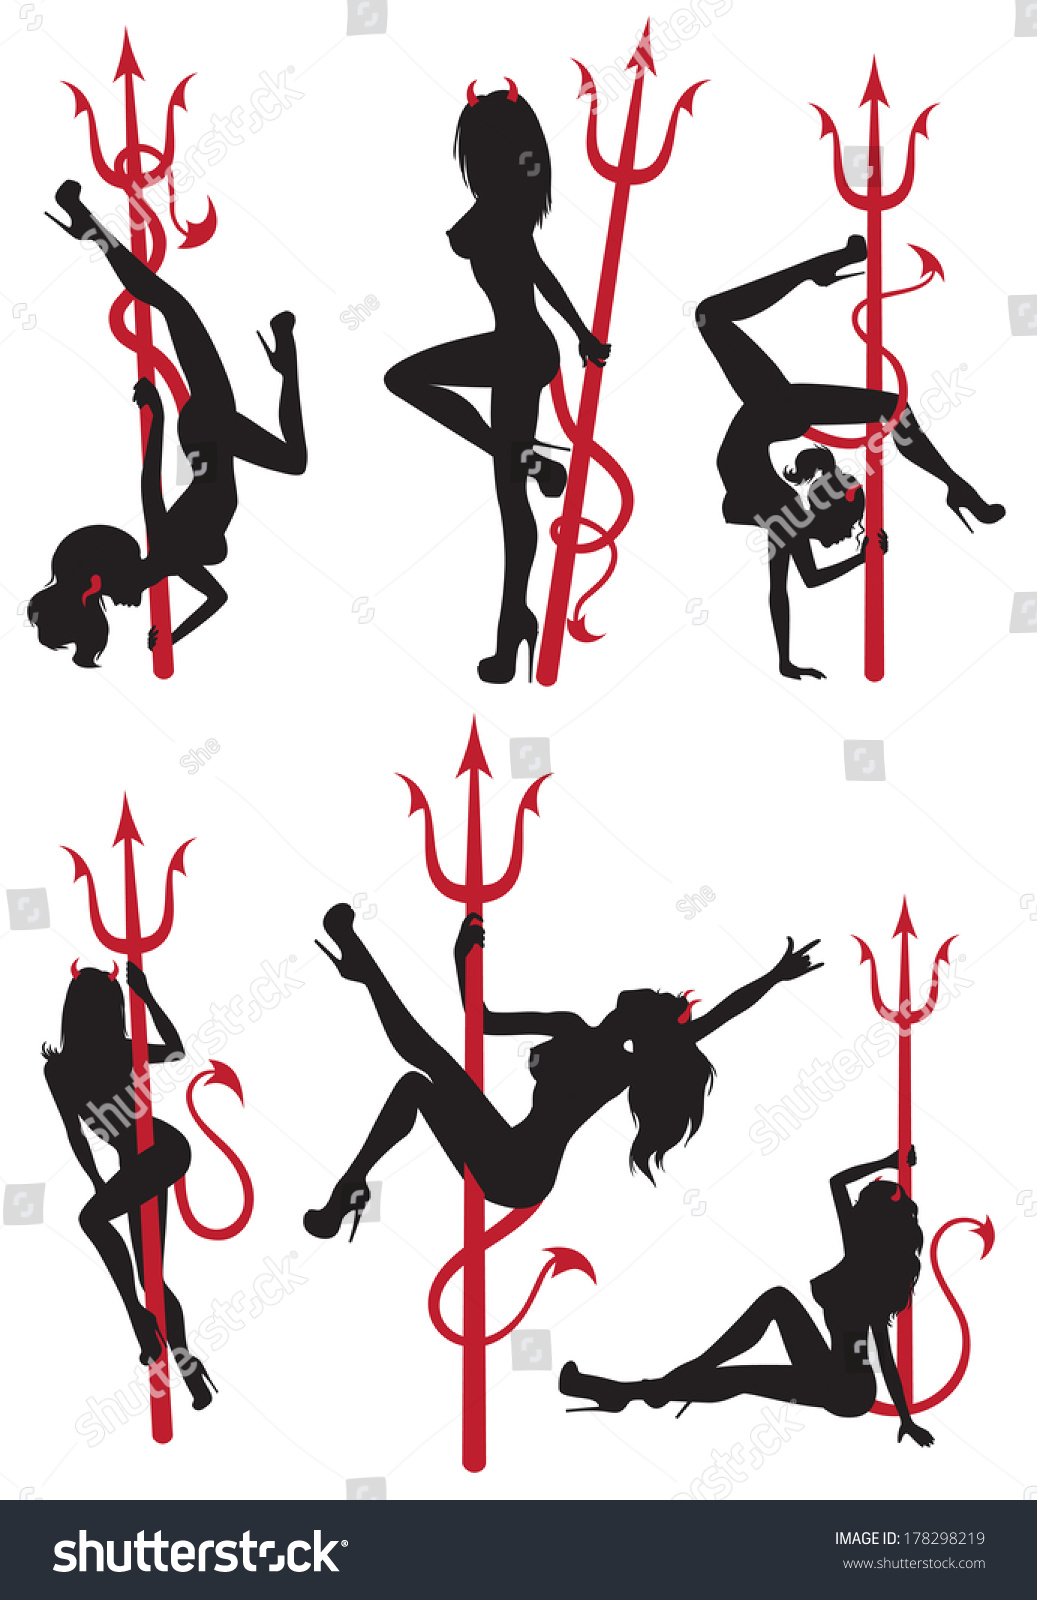 Collection Set Beautiful Sexy Pole Dance Stock Vector 178298219 - Shutterstock-4141